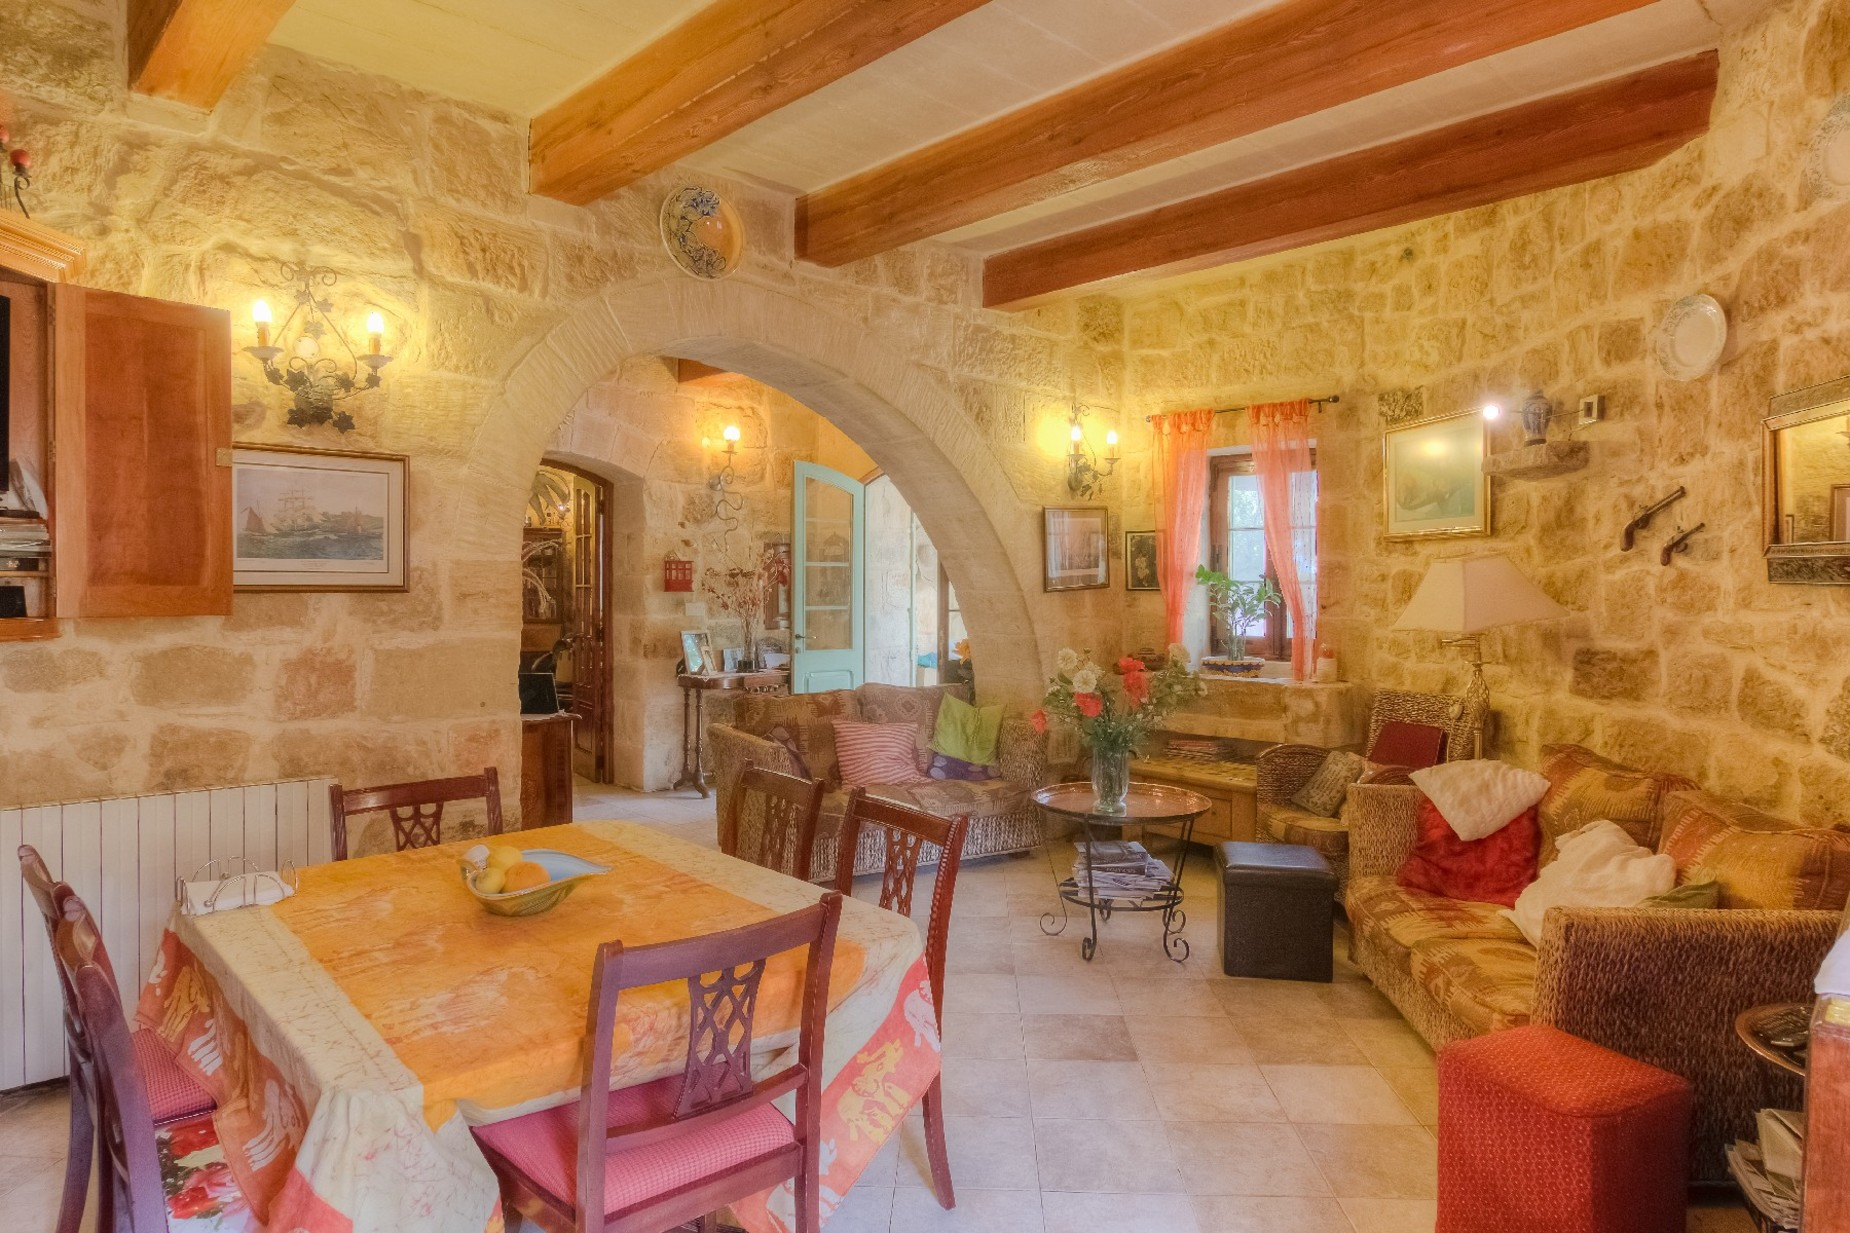 4 bed Farmhouse For Rent in Zurrieq, Zurrieq - thumb 3